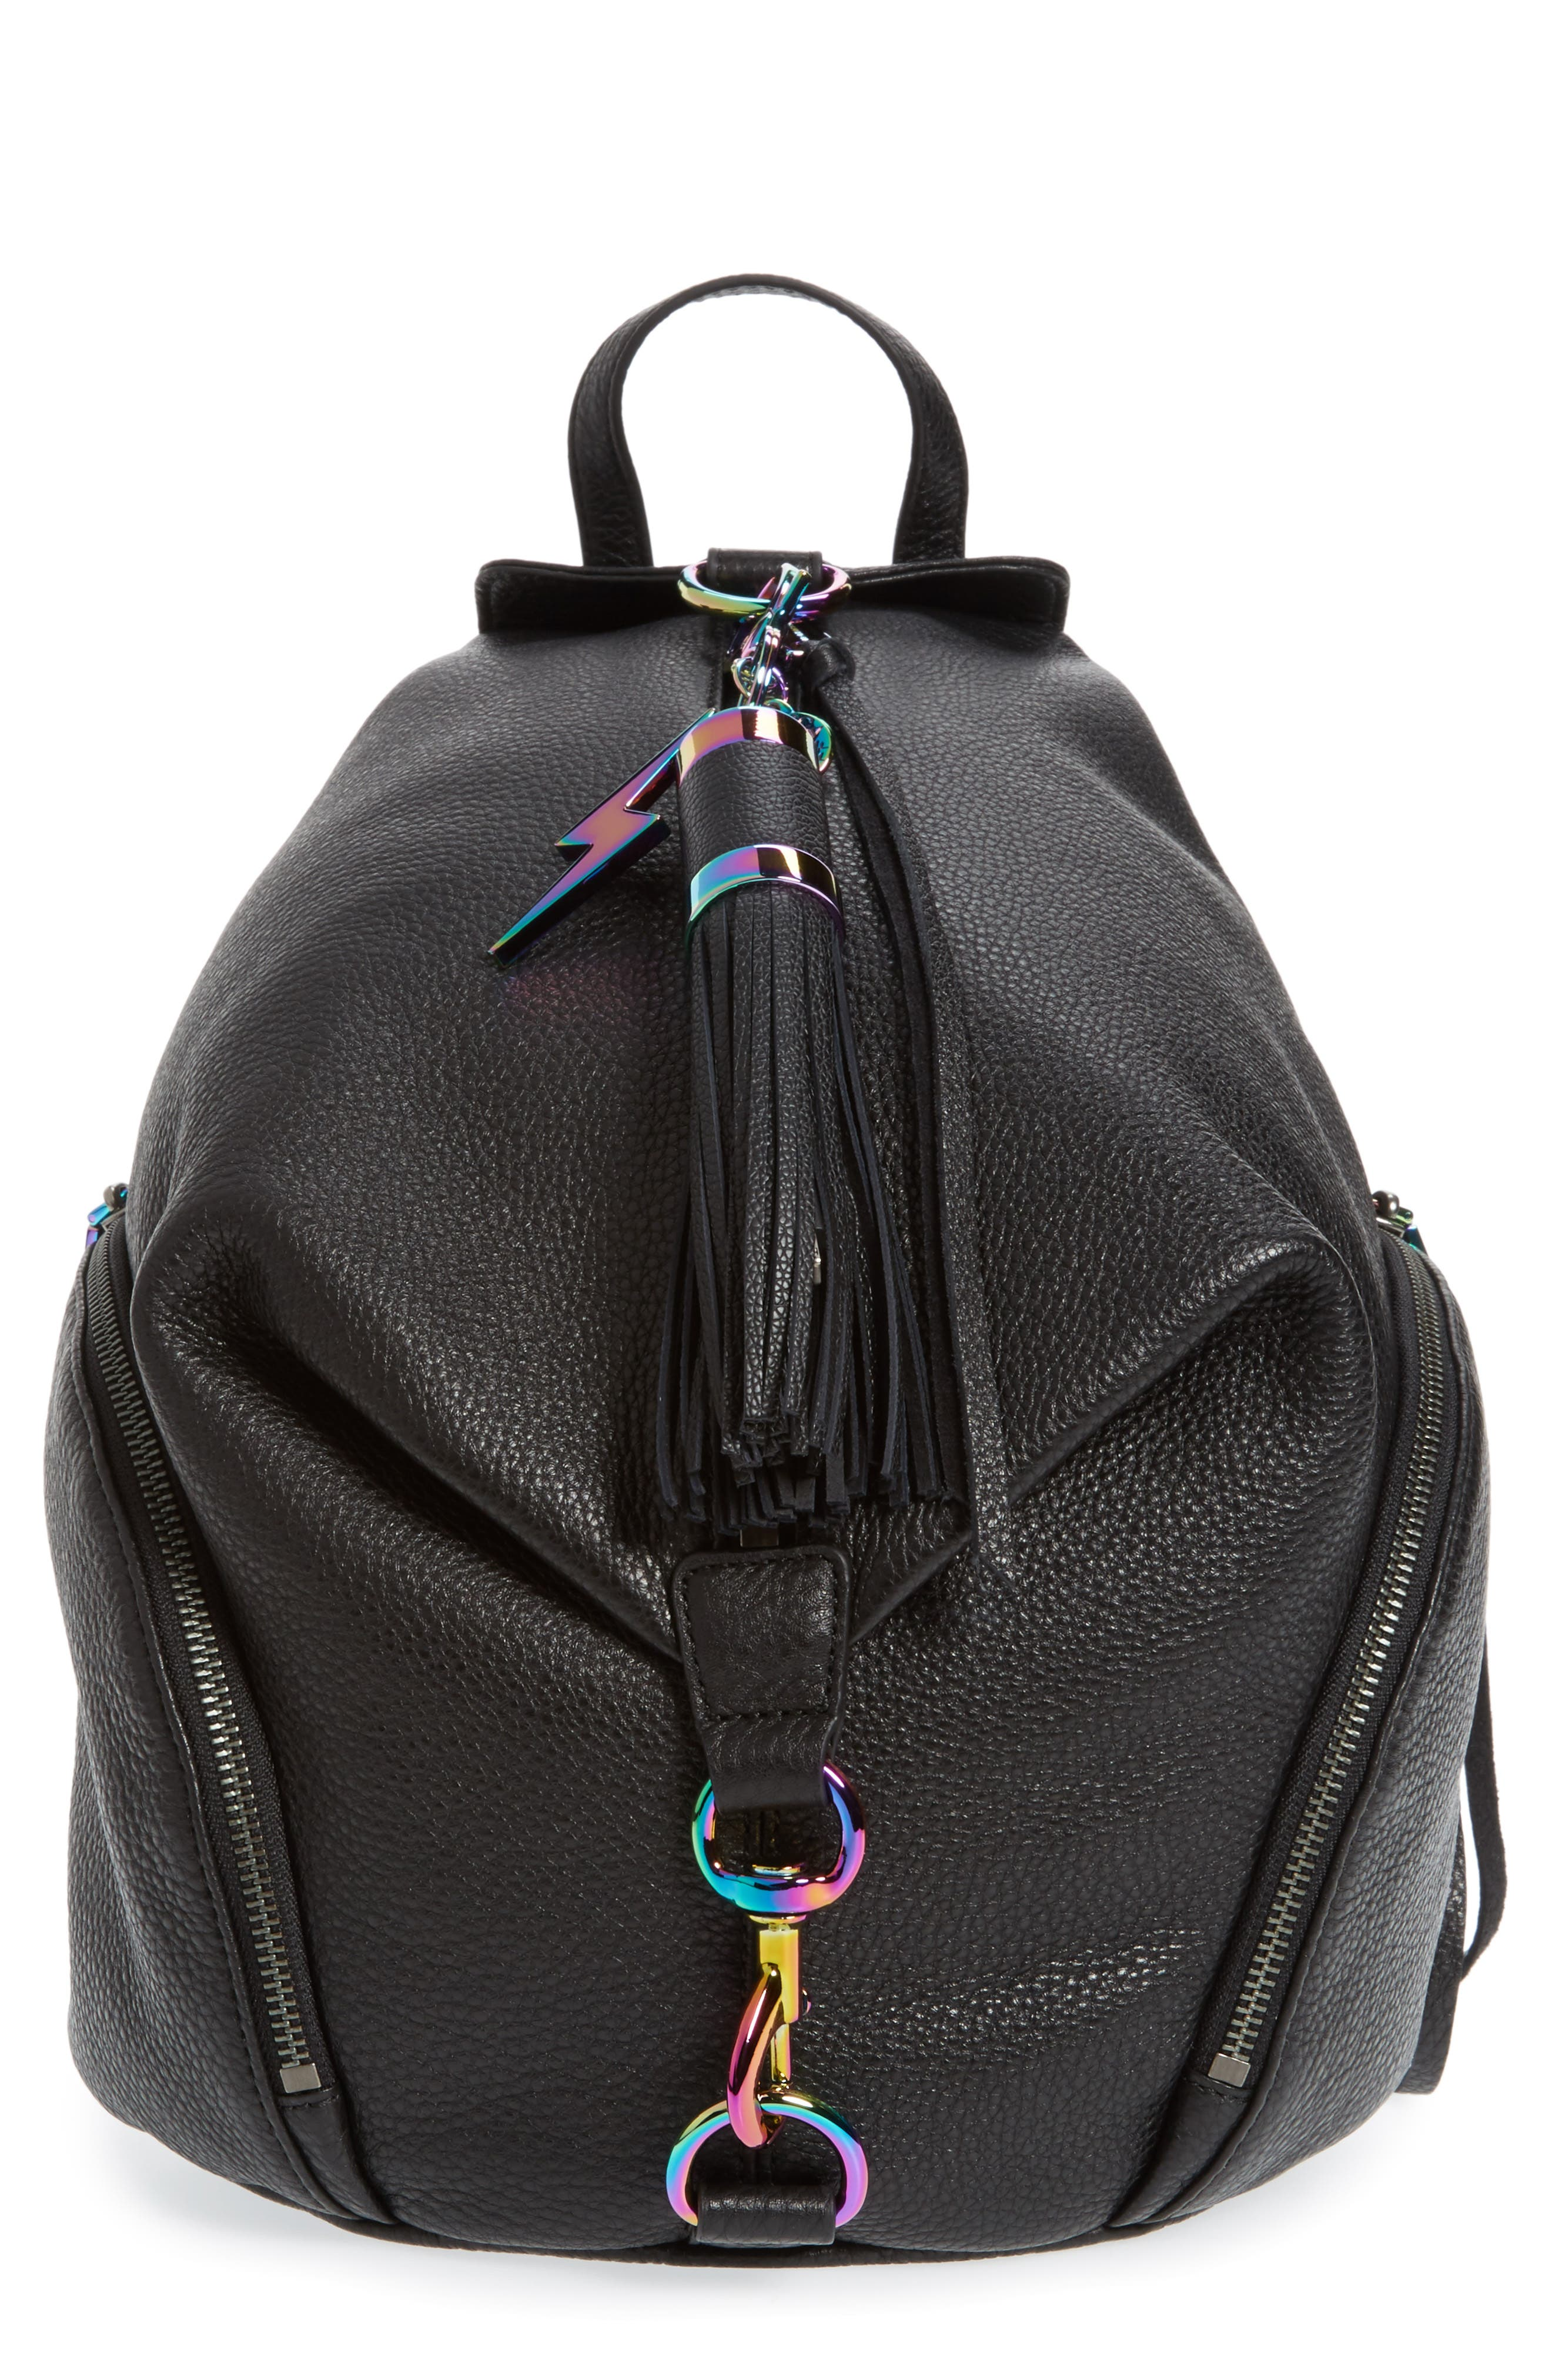 Julian Always On Charging Leather Backpack,                             Main thumbnail 1, color,                             001